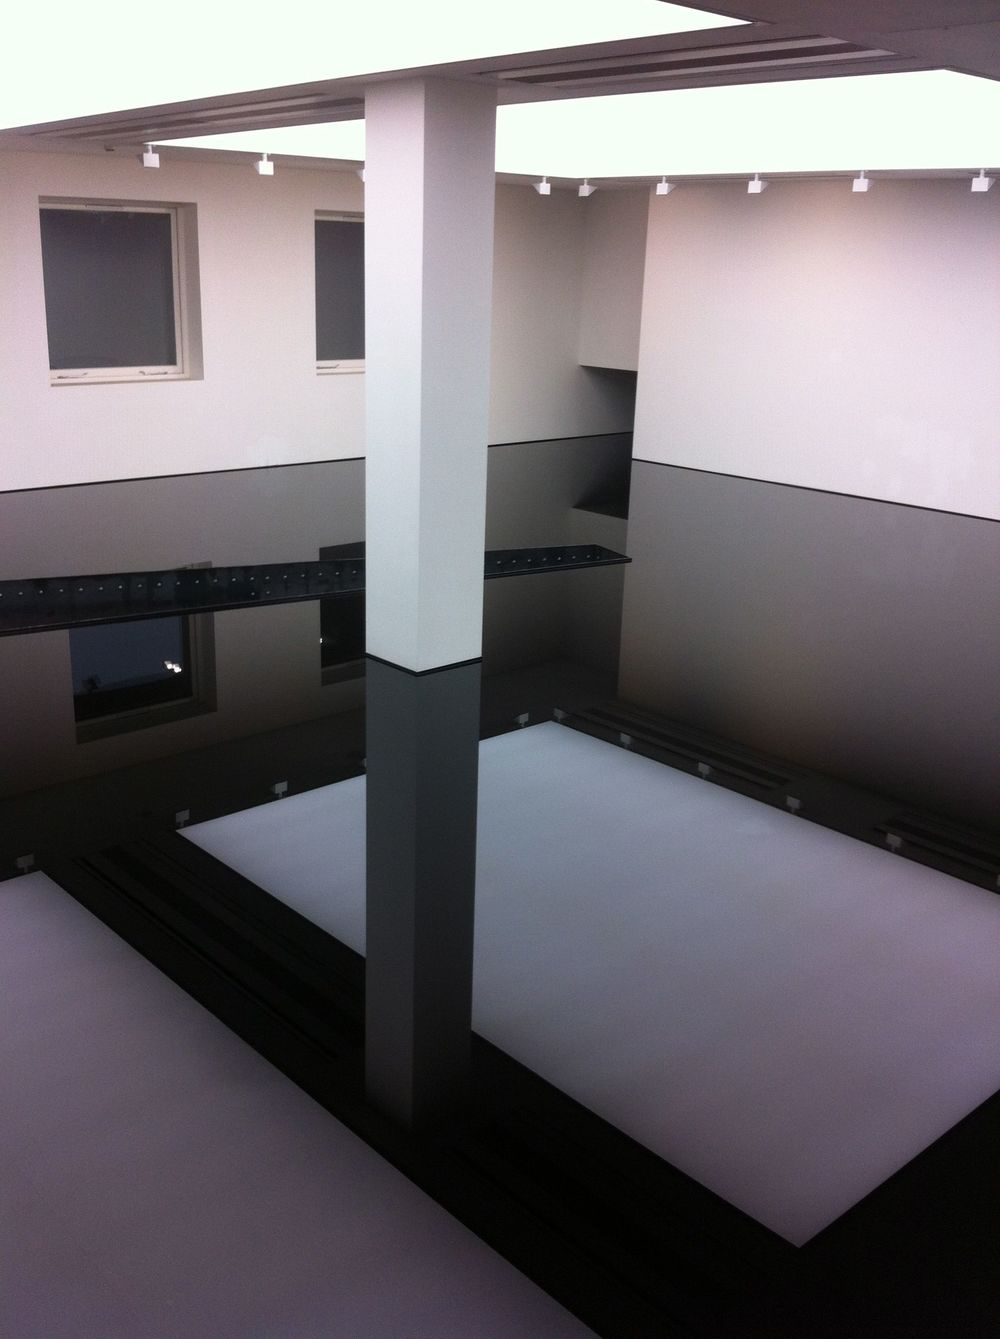 Richard Wilson's Site Specific Oil Installation @ The Saatchi Gallery